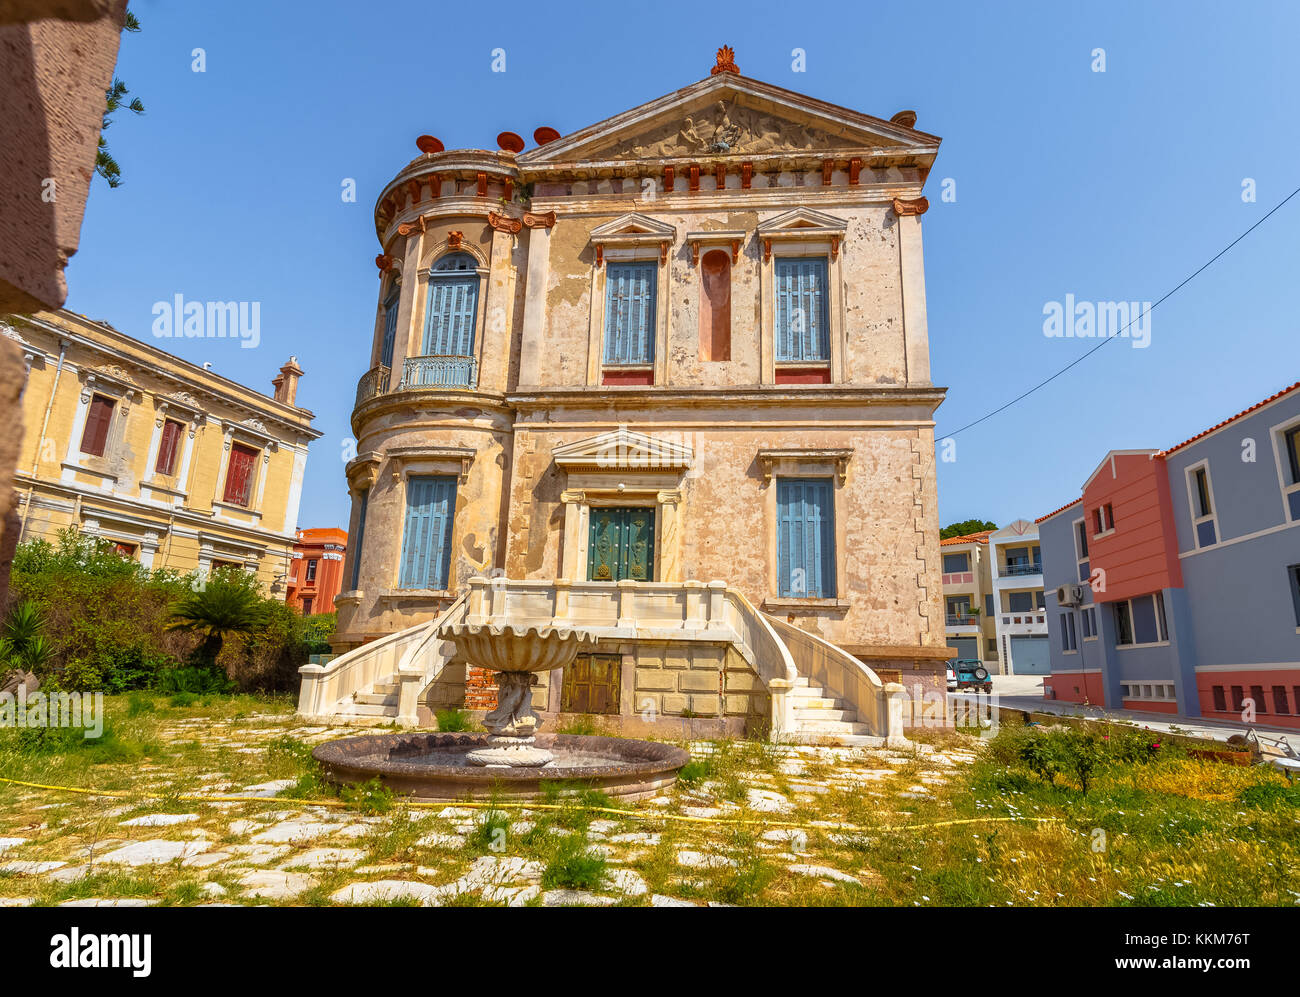 Typical colorful Mediterranean style mansion built in classical